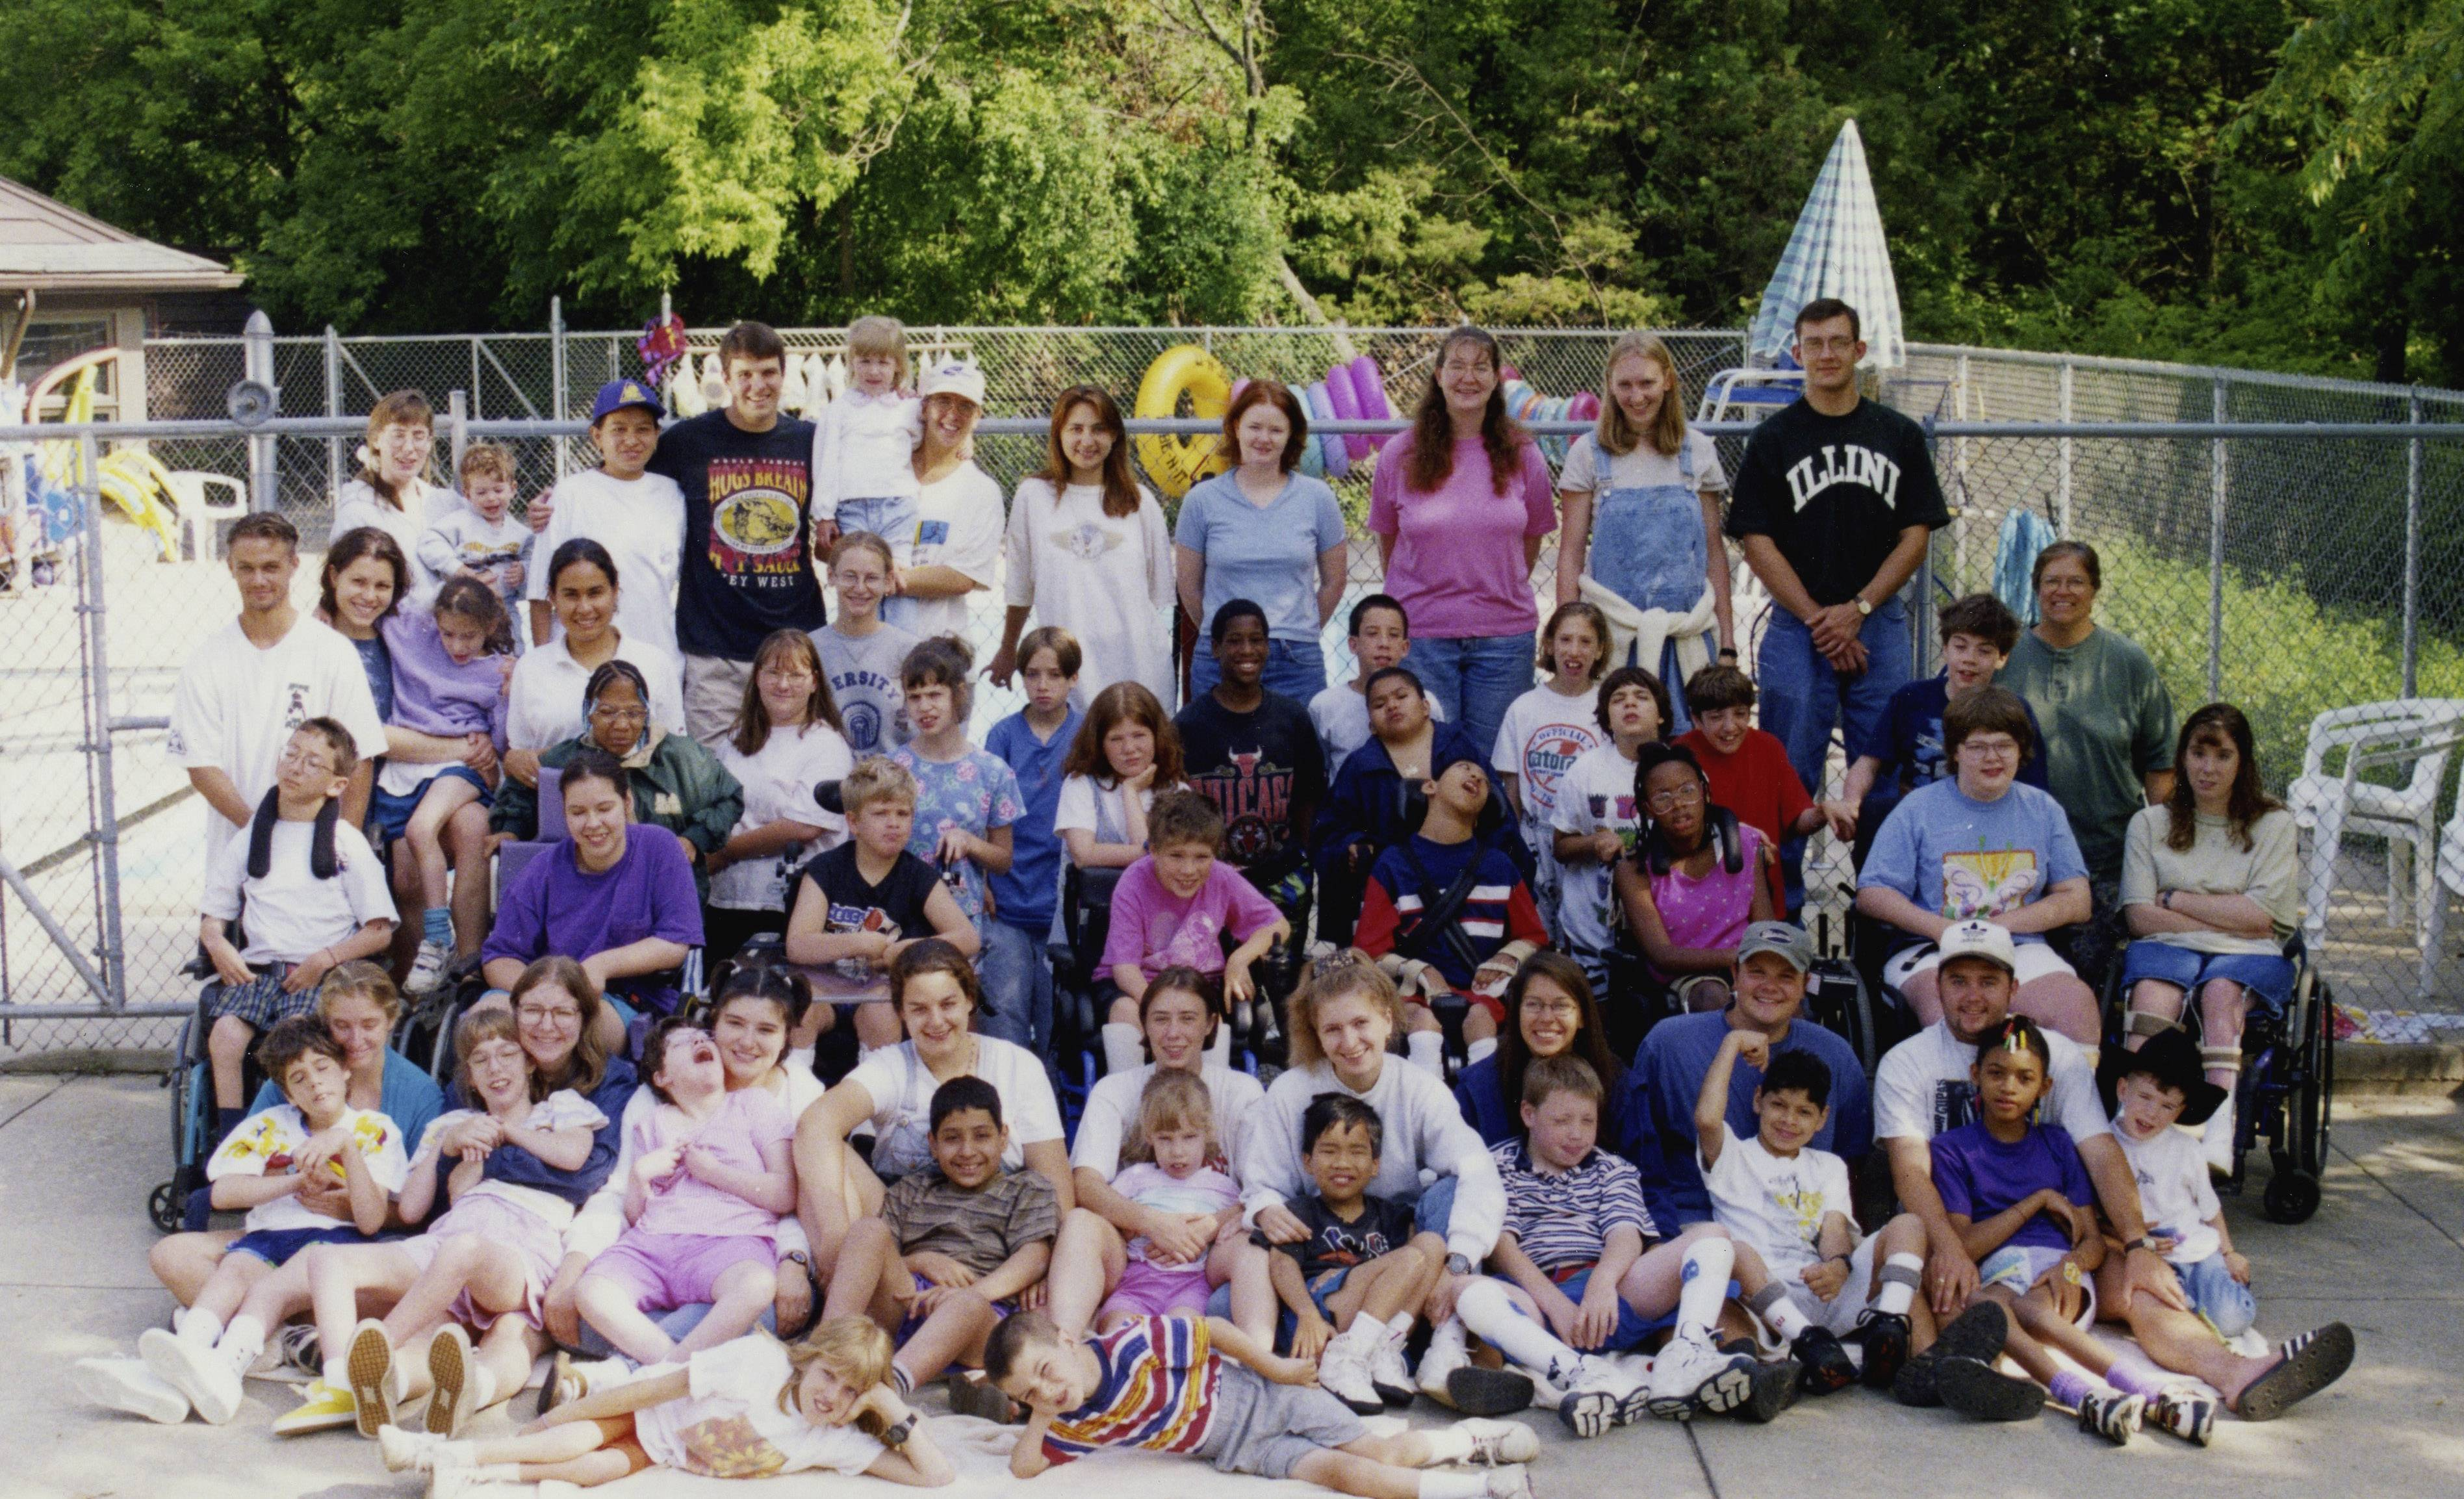 A late 1990s group shot at Camp Peacock.